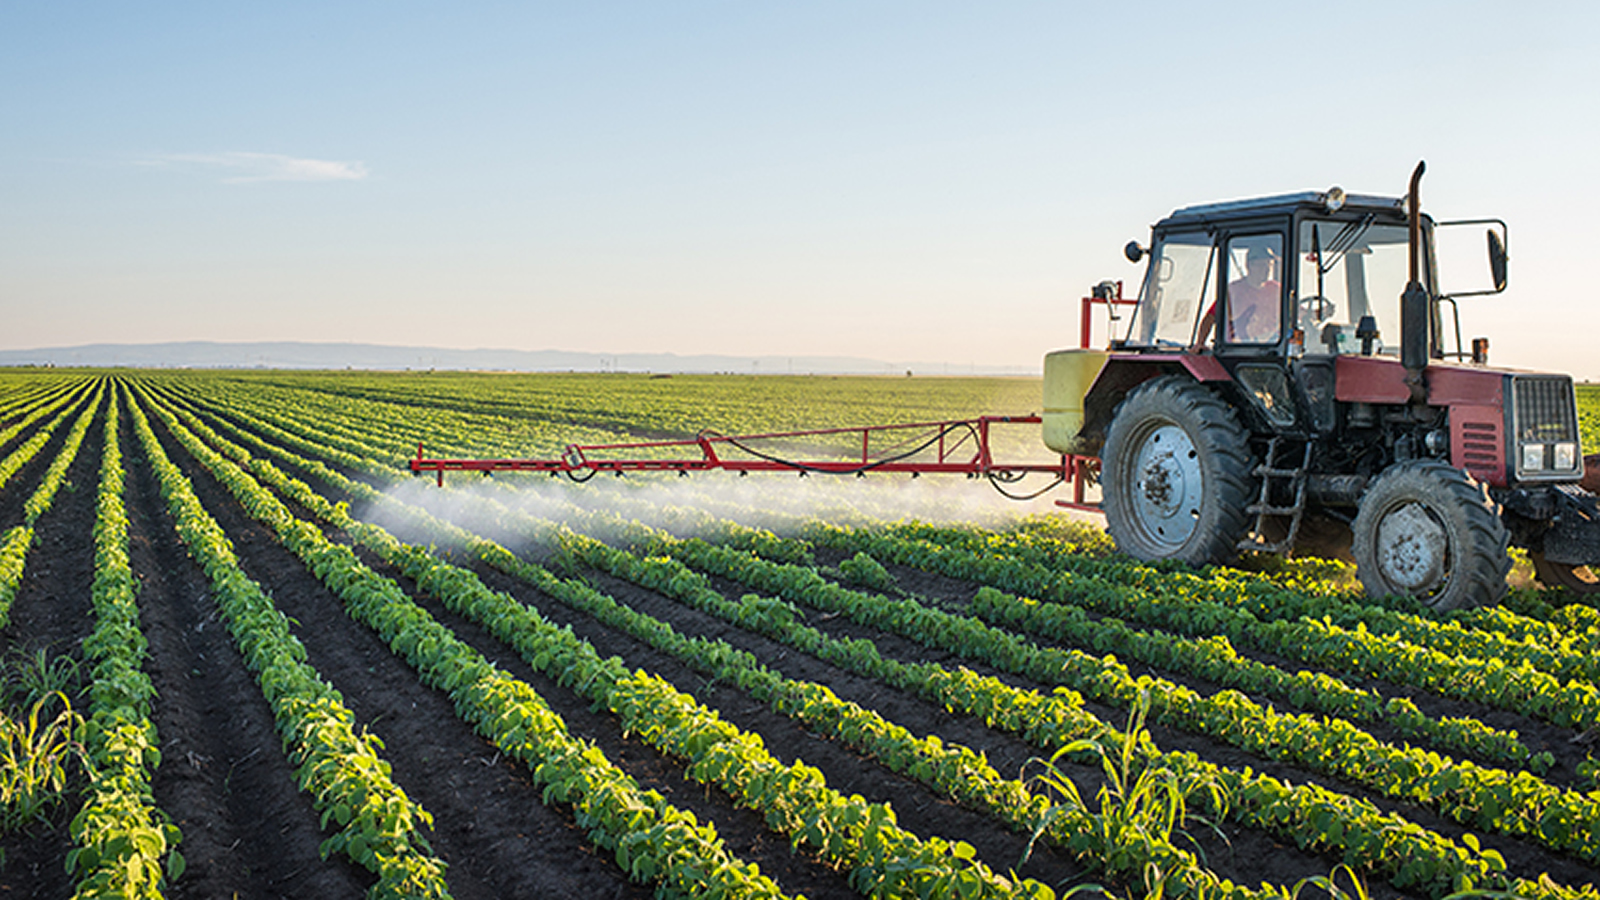 <h4>Chemicals In Farming</h4><p>American farms used nearly 900 million pounds of pesticides in the most recent year for which we have data.</p><em>iStockphoto.com</em>